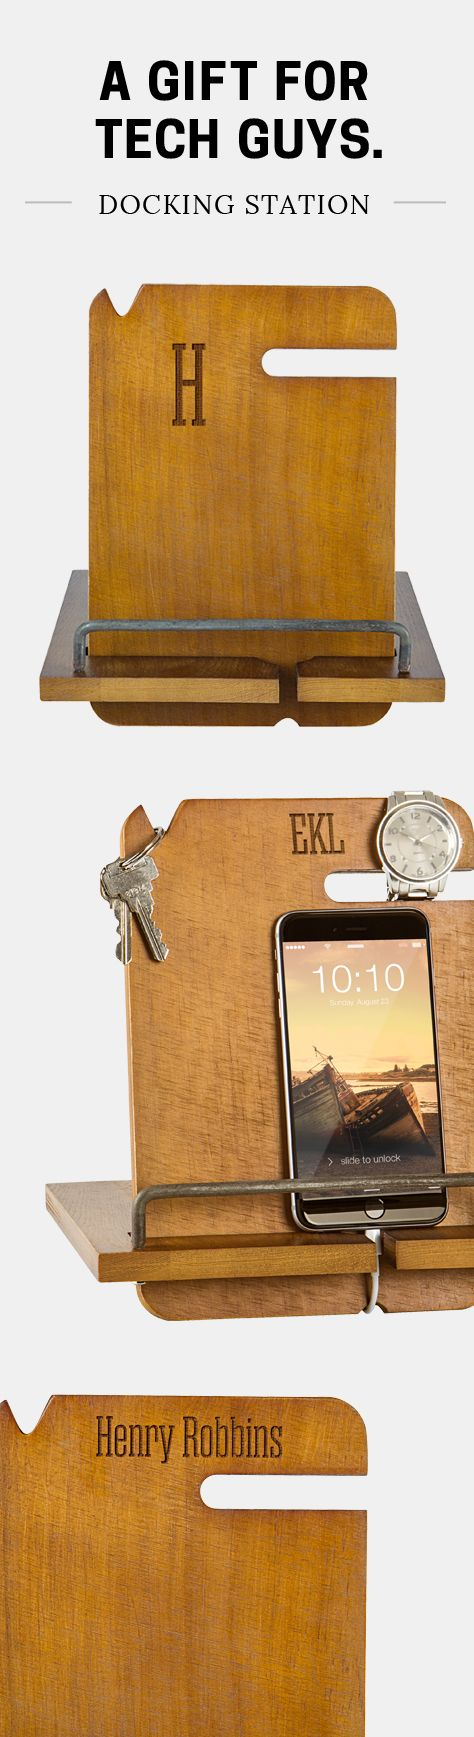 This rugged, hand-crafted wood docking station is the perfect gift idea for any guy.  Great for your boyfriend, husband, dad, or brother. Keep all his day-to-day necessities organized and close at hand with this personalized nightstand organizer and mobile docking station.  Featuring a slot for watches, a keychain notch at the top,  and  space for your wallet and smartphone. To order, visit https://www.tippytoad.com/personalized-wood-nightstand-docking-station.asp